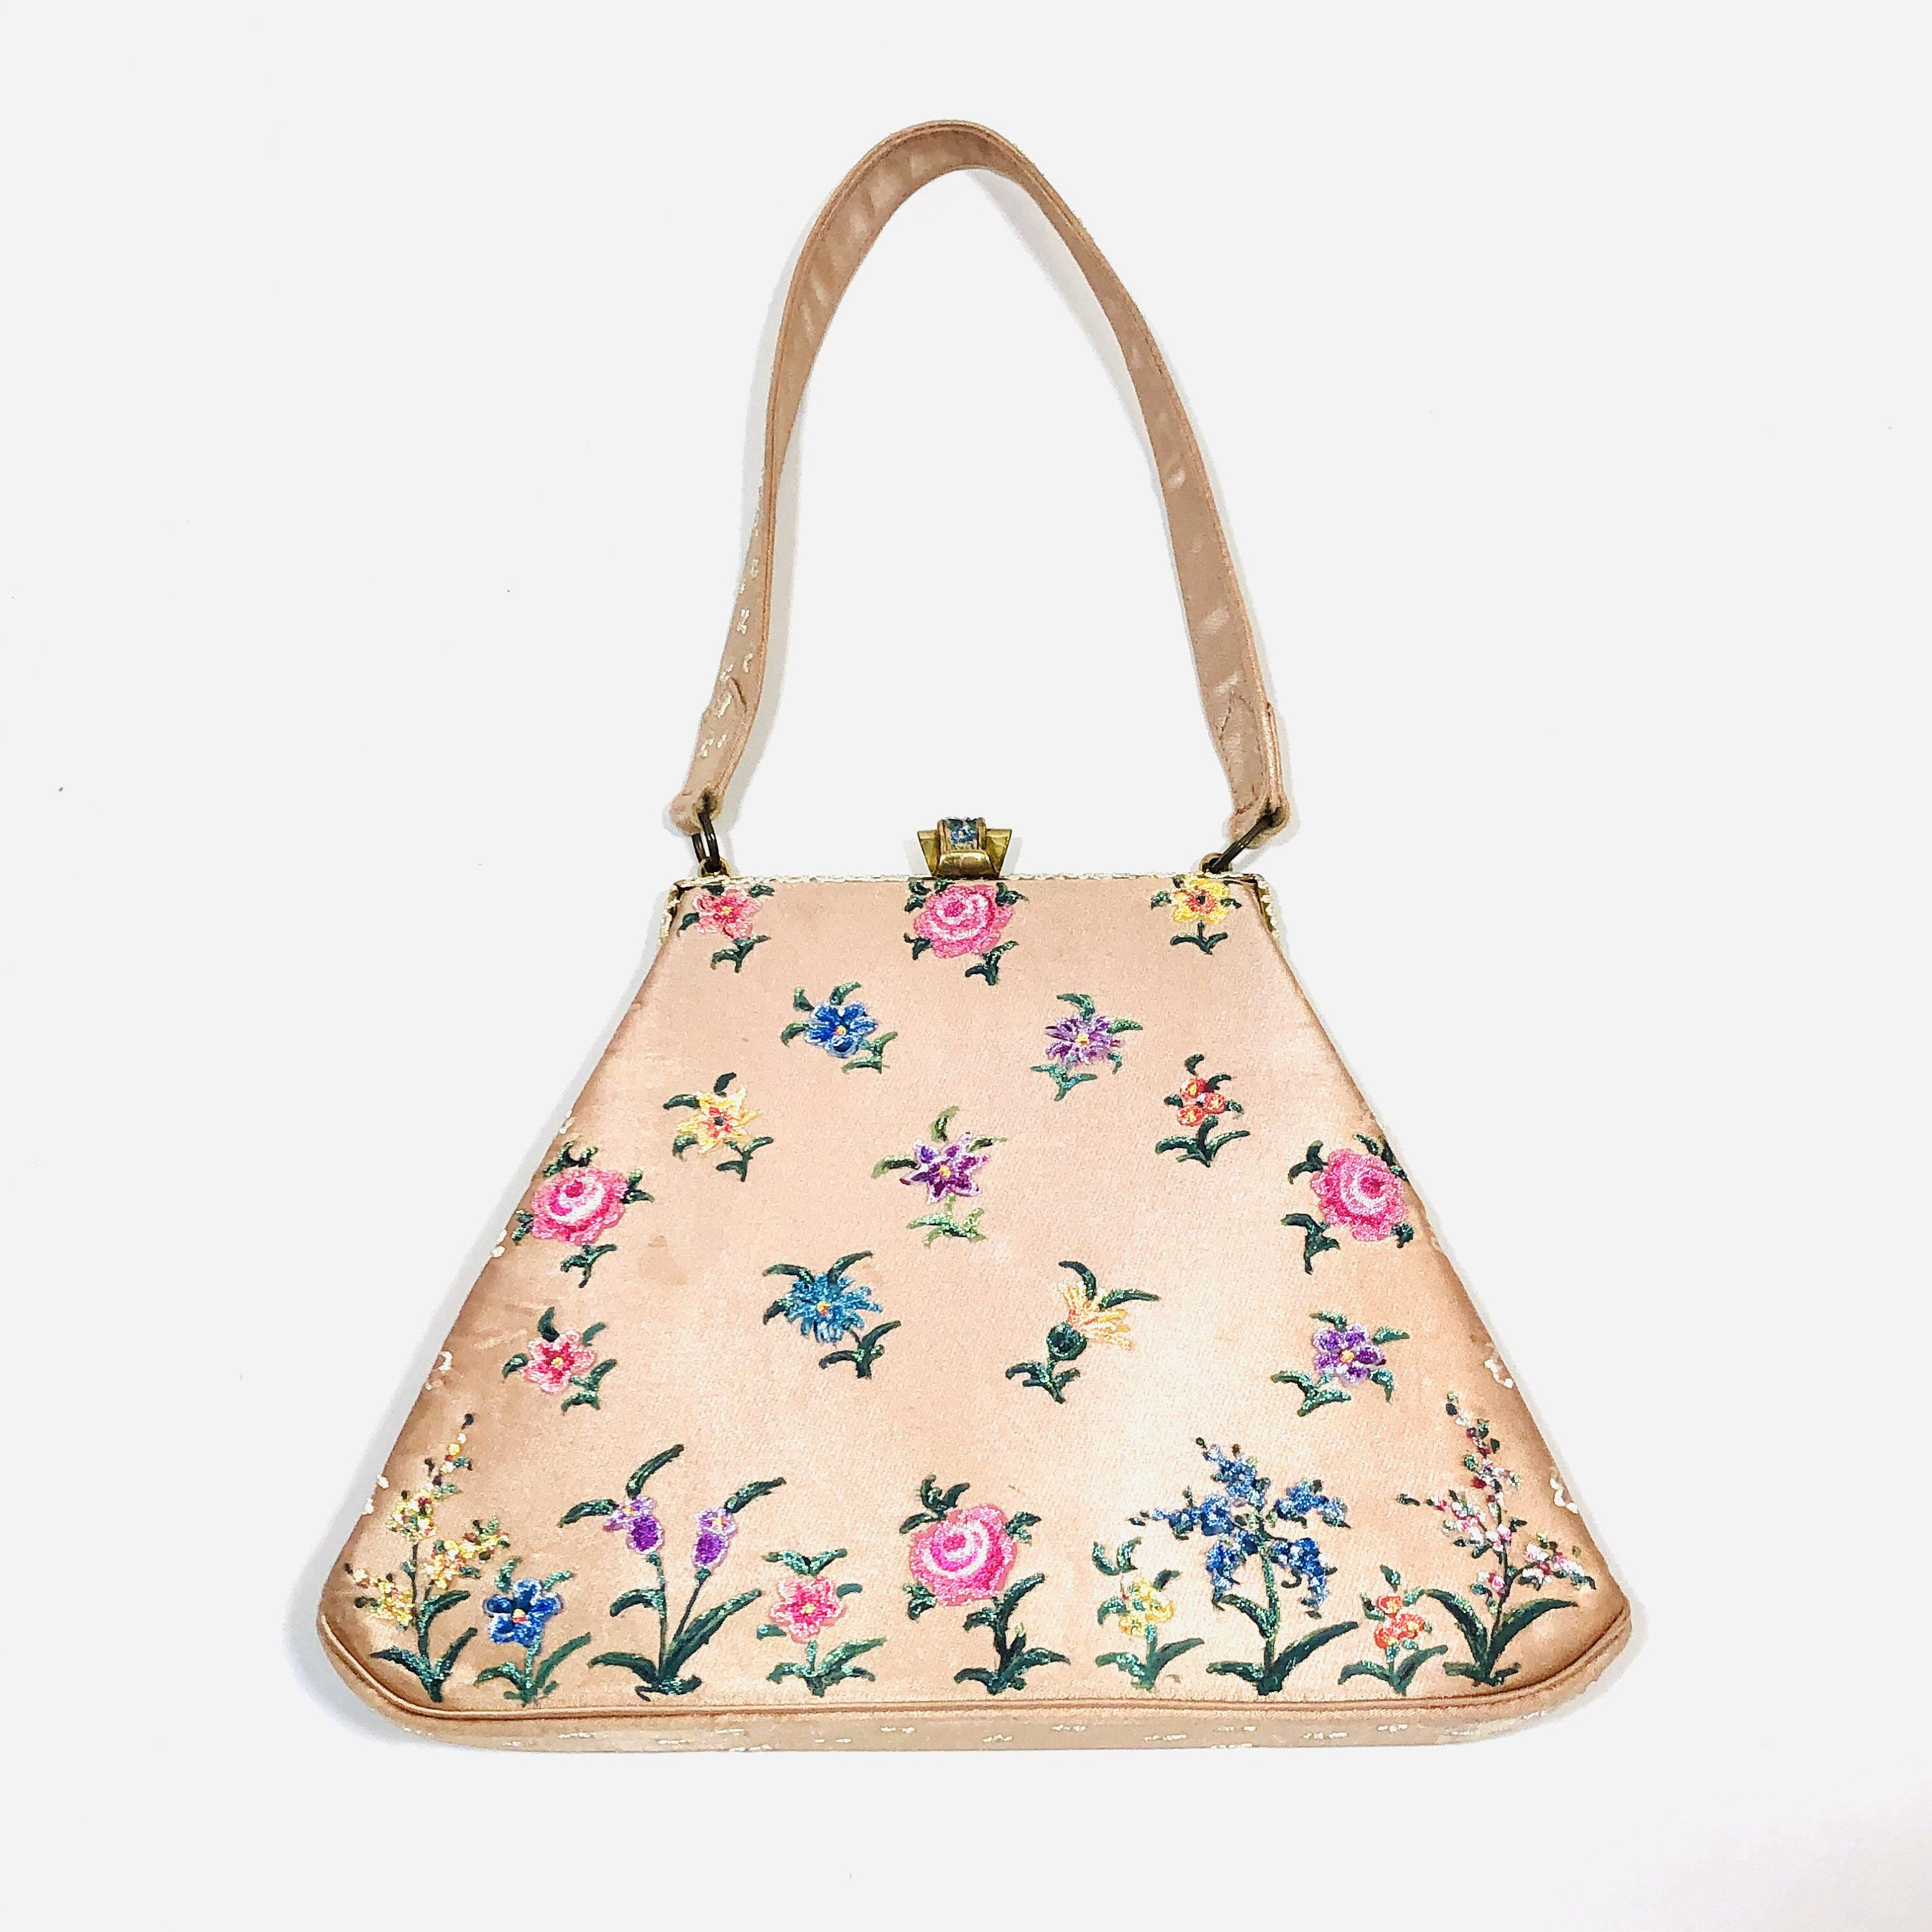 Vintage 1940s Waldybag Hand Painted Beaded Satin Bag Pink Etsy In 2020 Satin Bags Hand Painted Purses Painted Purse